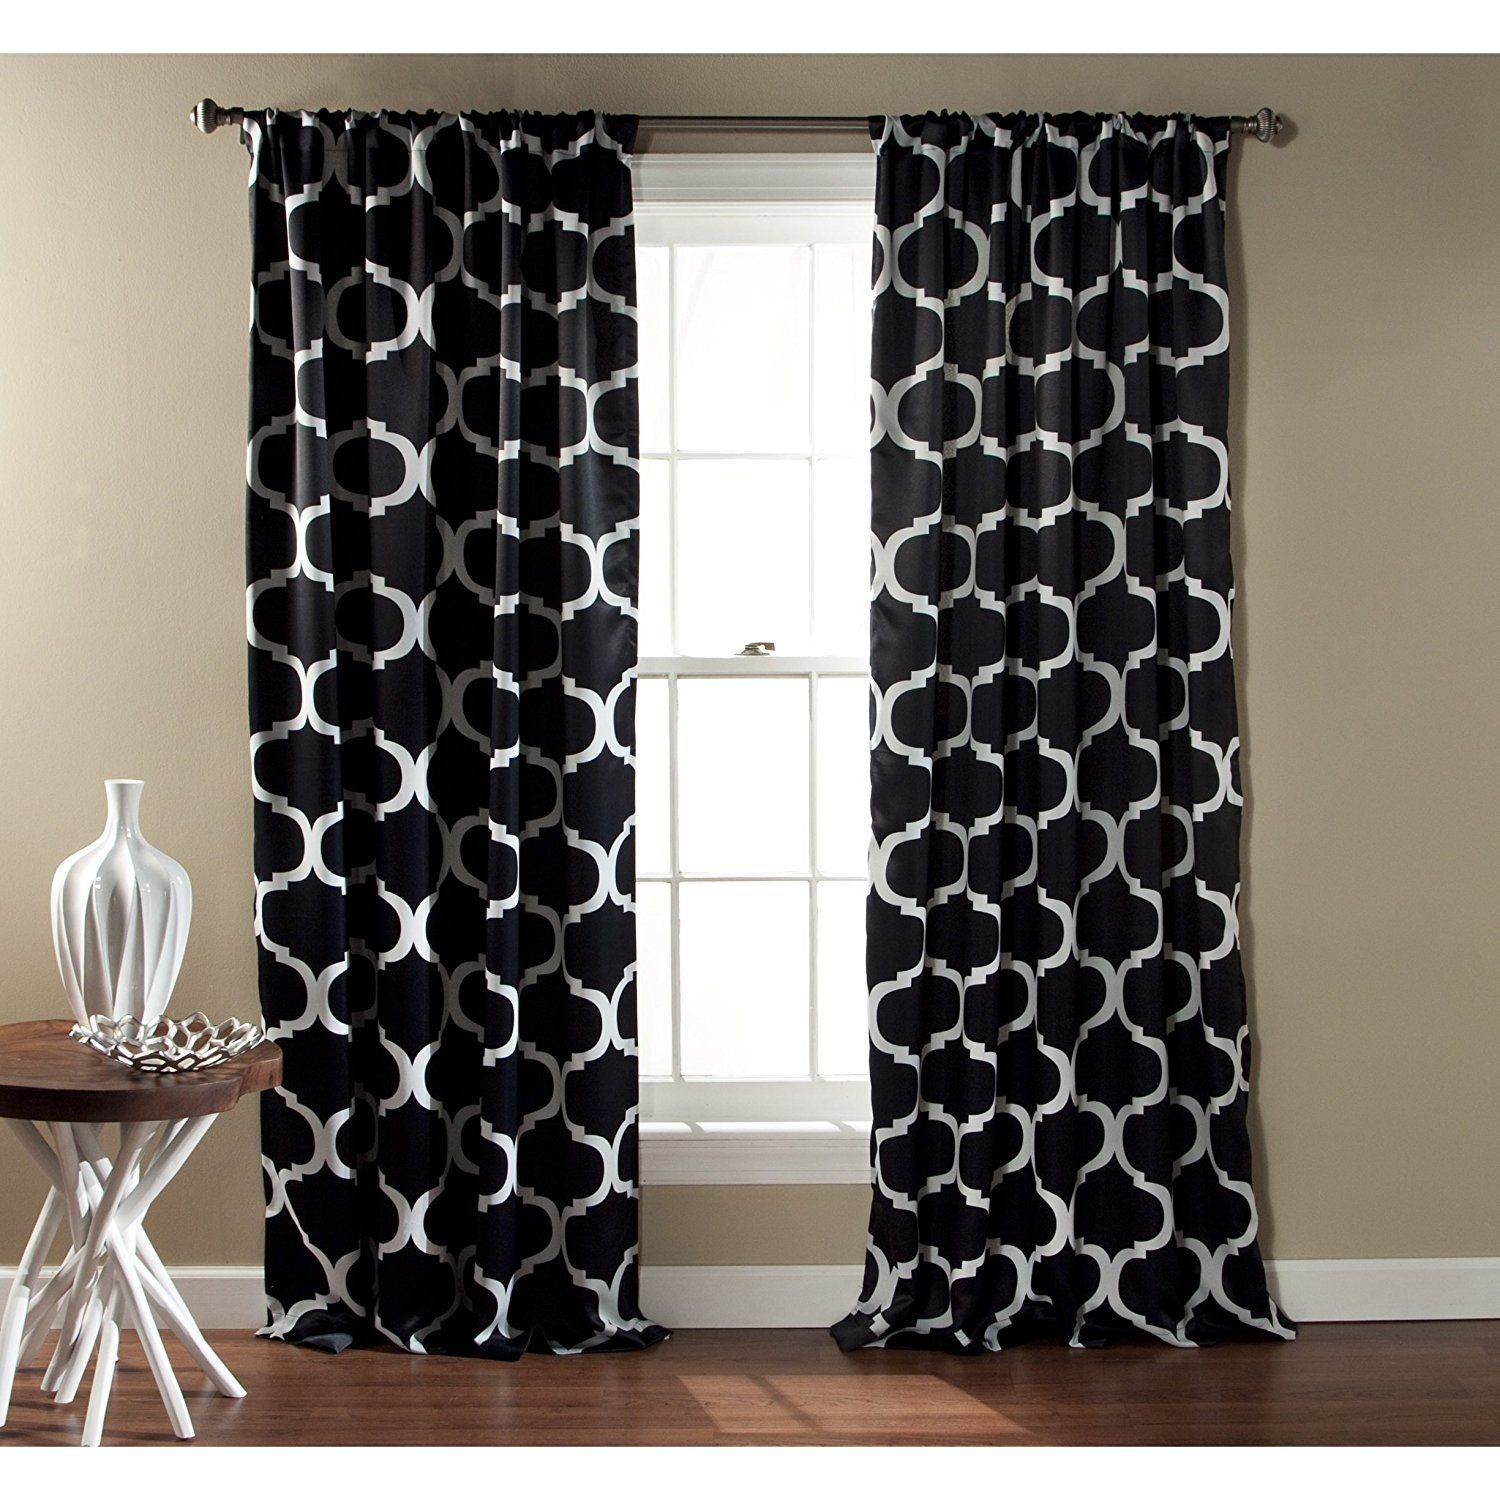 inch bold black white moroccan curtains panel pair set moroccan